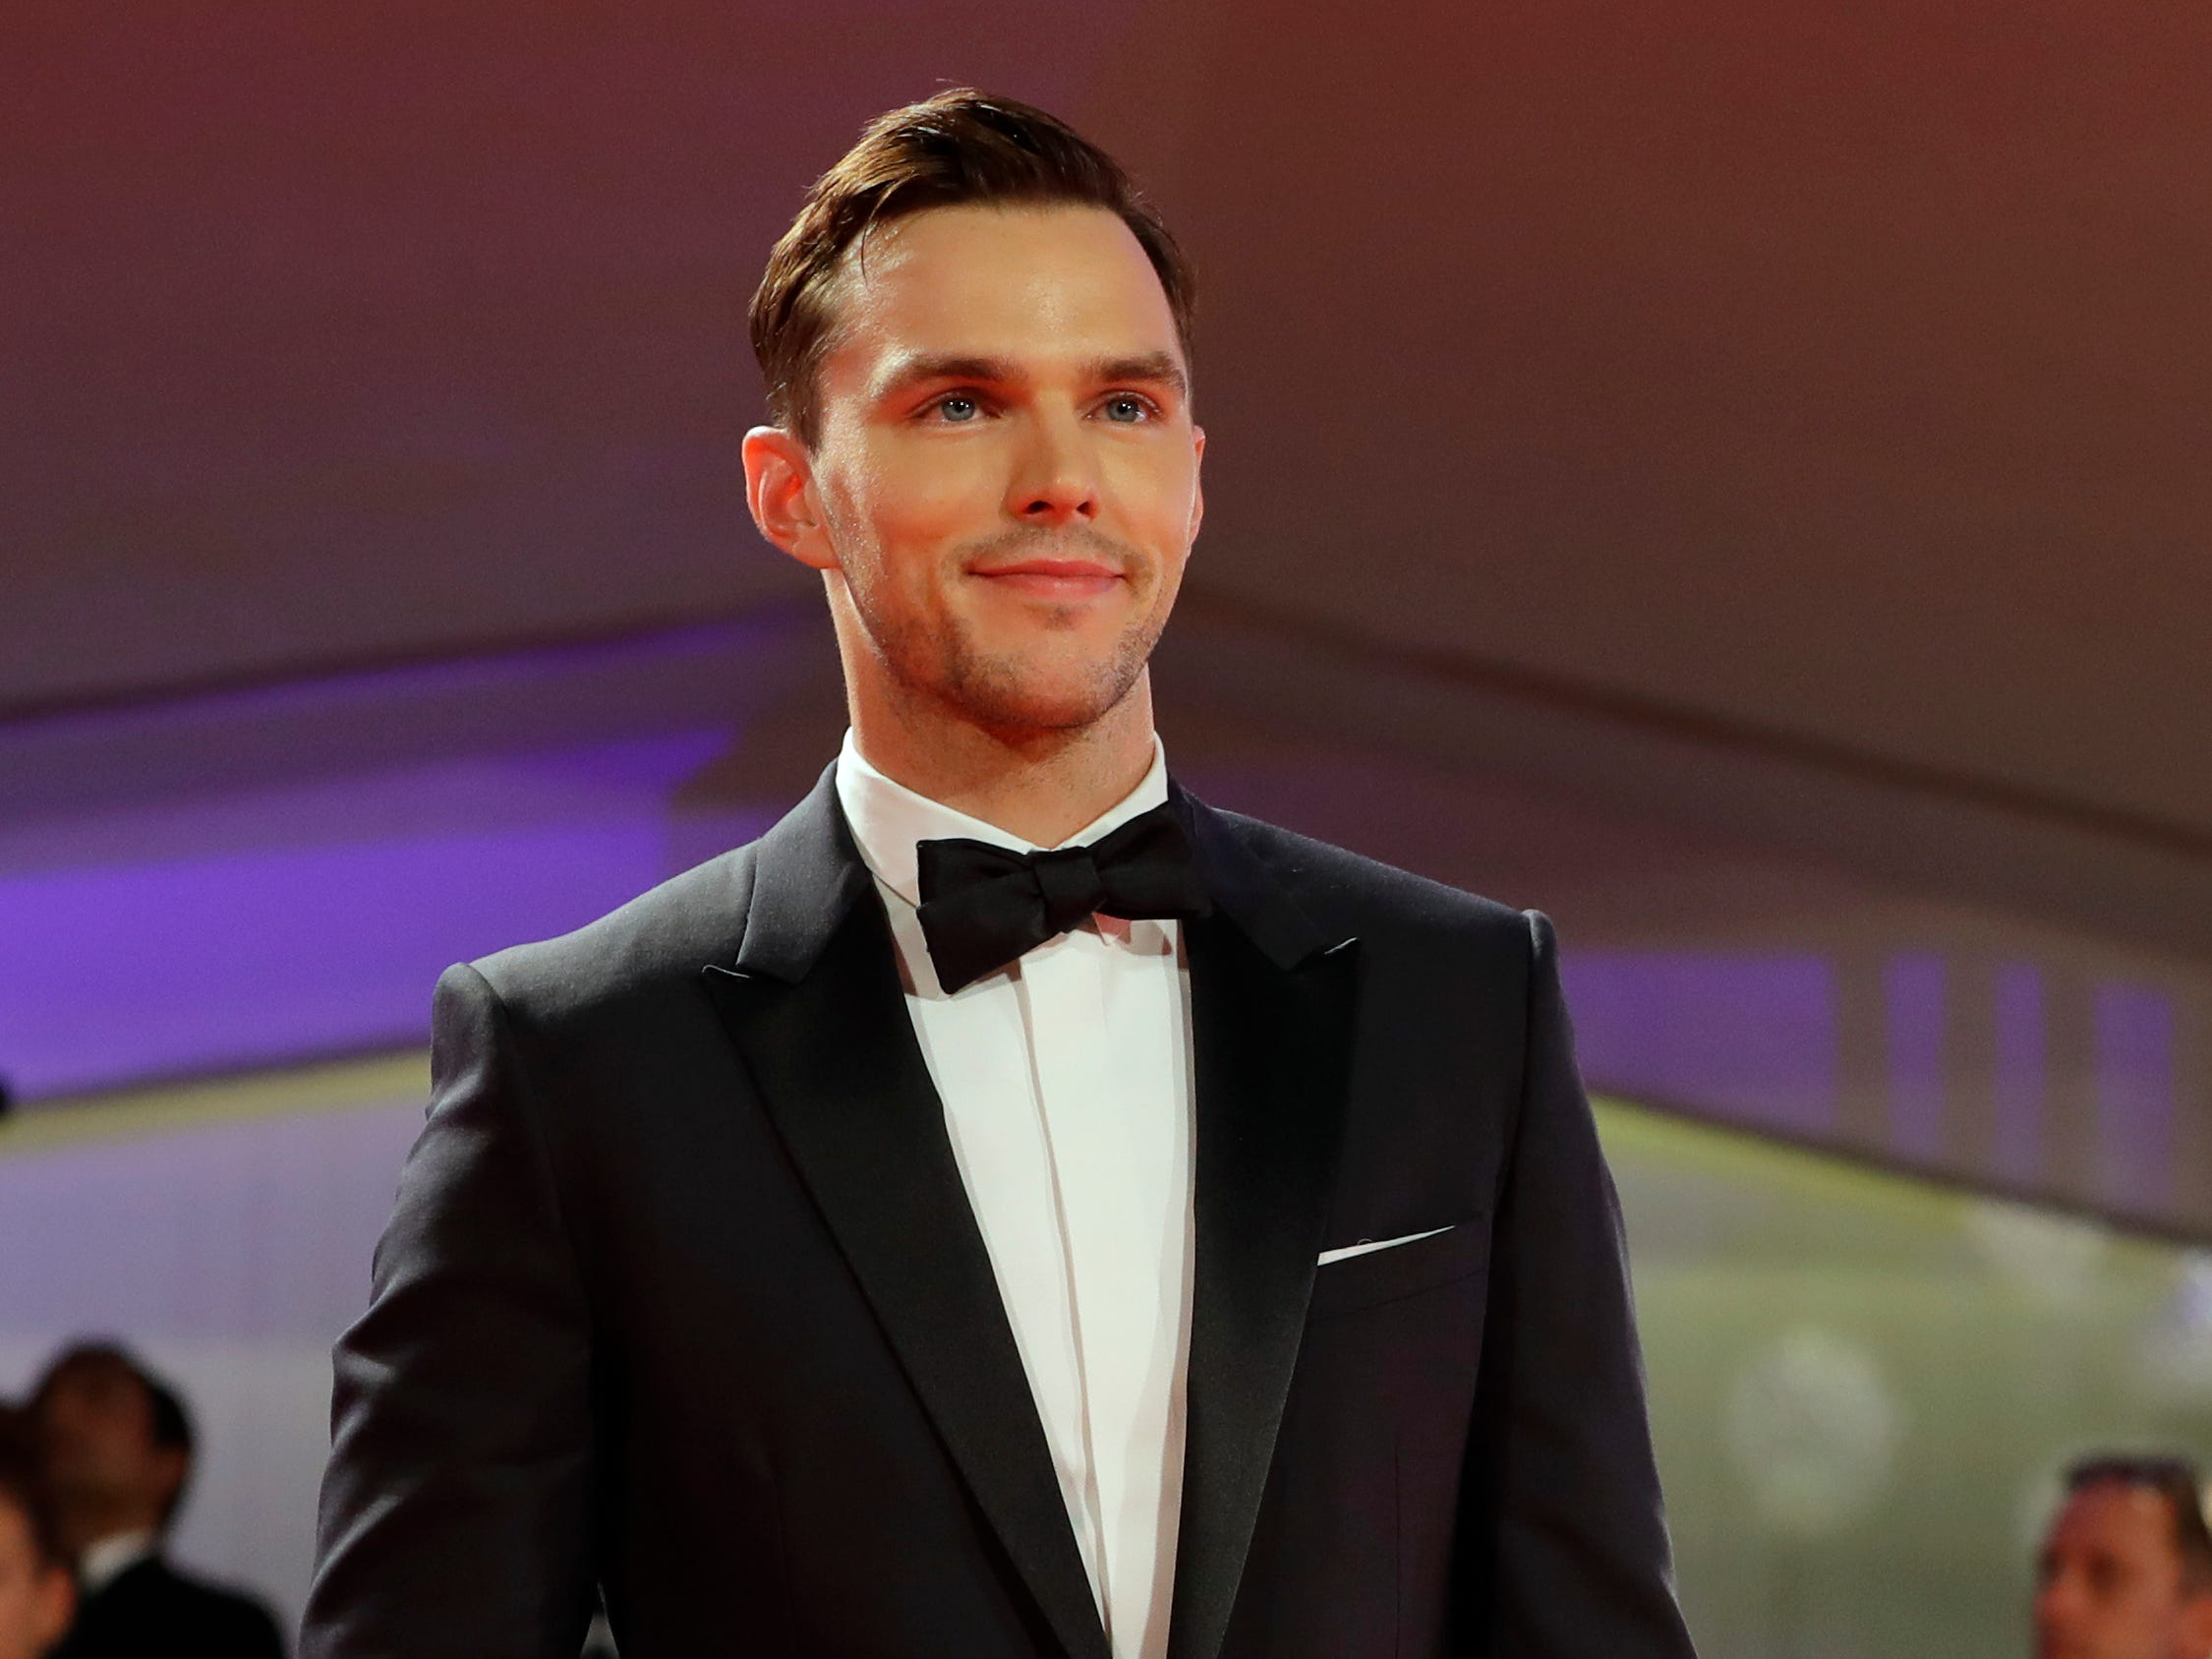 Actor Nicholas Hoult poses for photographers upon arrival at the premiere of the film 'The Favourite' at the 75th edition of the Venice Film Festival in Venice, Italy, Thursday, Aug. 30 , 2018.